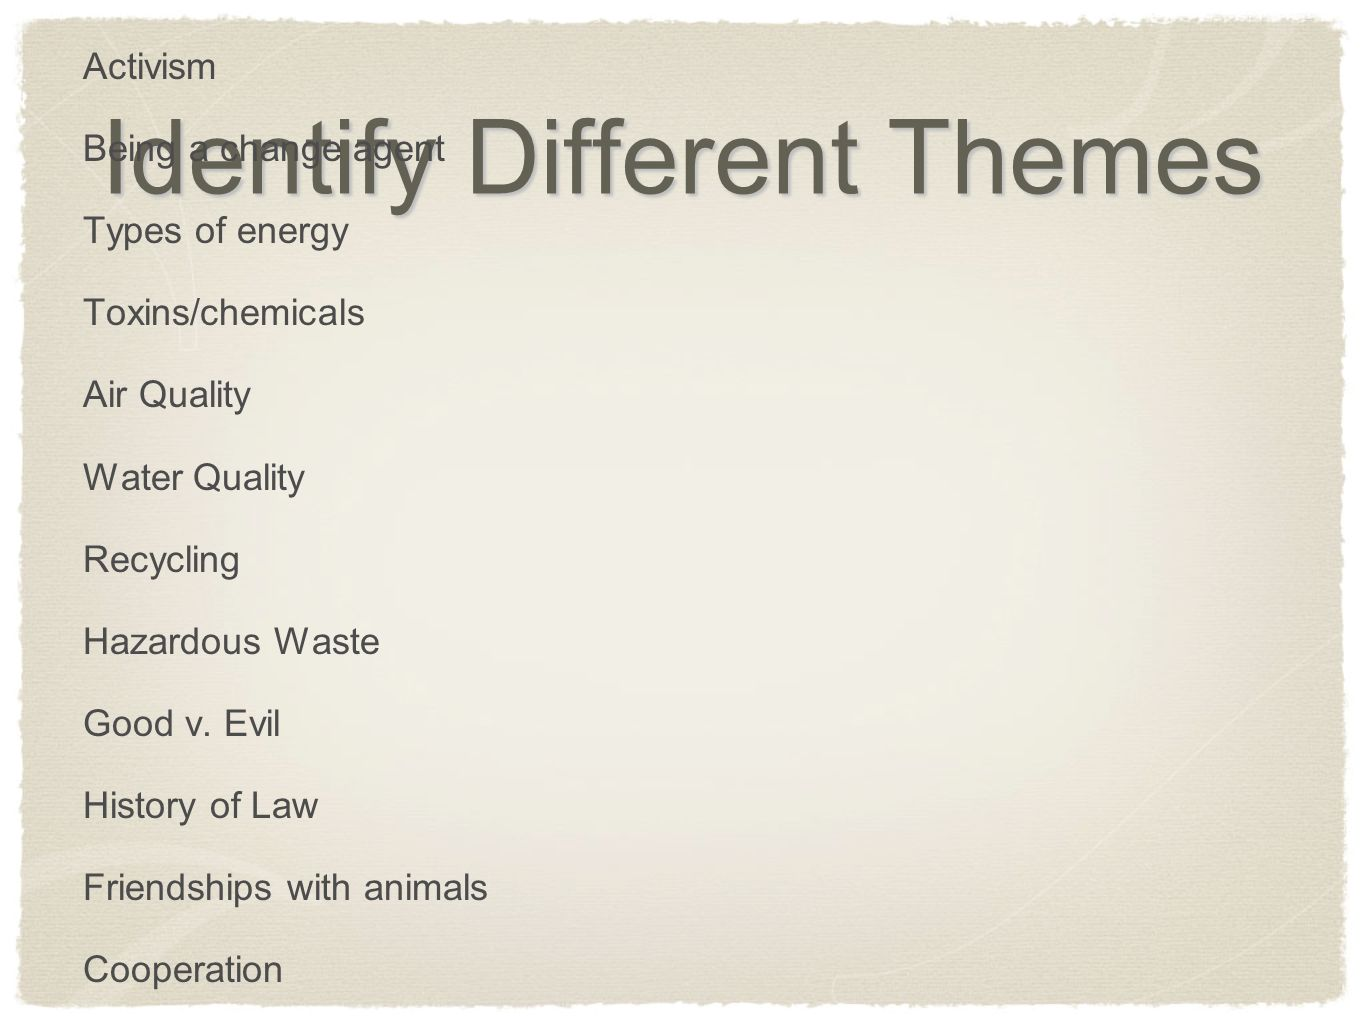 Identify Different Themes